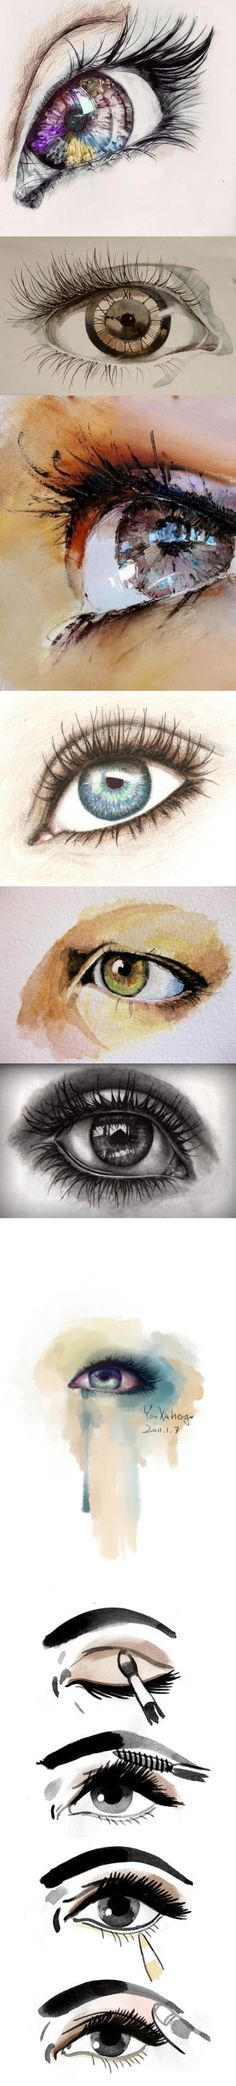 eye art for the new office. Art Tutorials, Drawing Tutorials, Eye Art, Drawing Techniques, Art Plastique, Art Tips, Painting & Drawing, Drawing Eyes, Eyeball Drawing